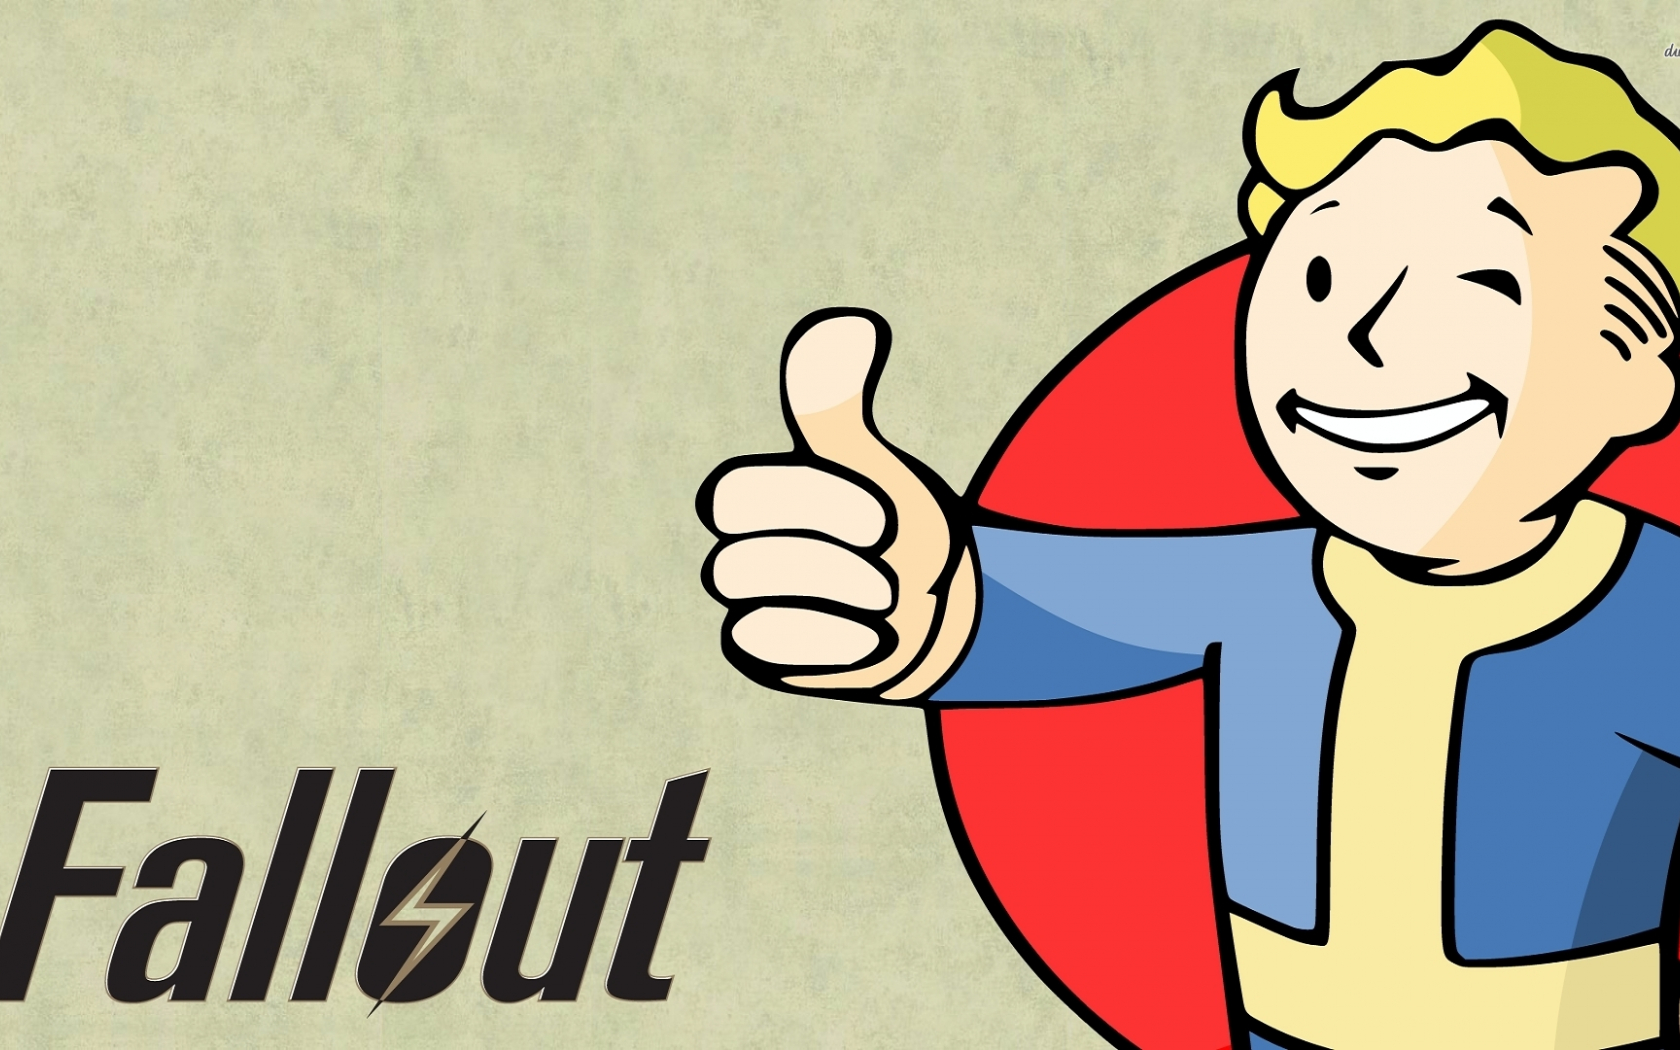 Free Download Vault Boy Fallout Wallpaper 1280x800 Vault Boy